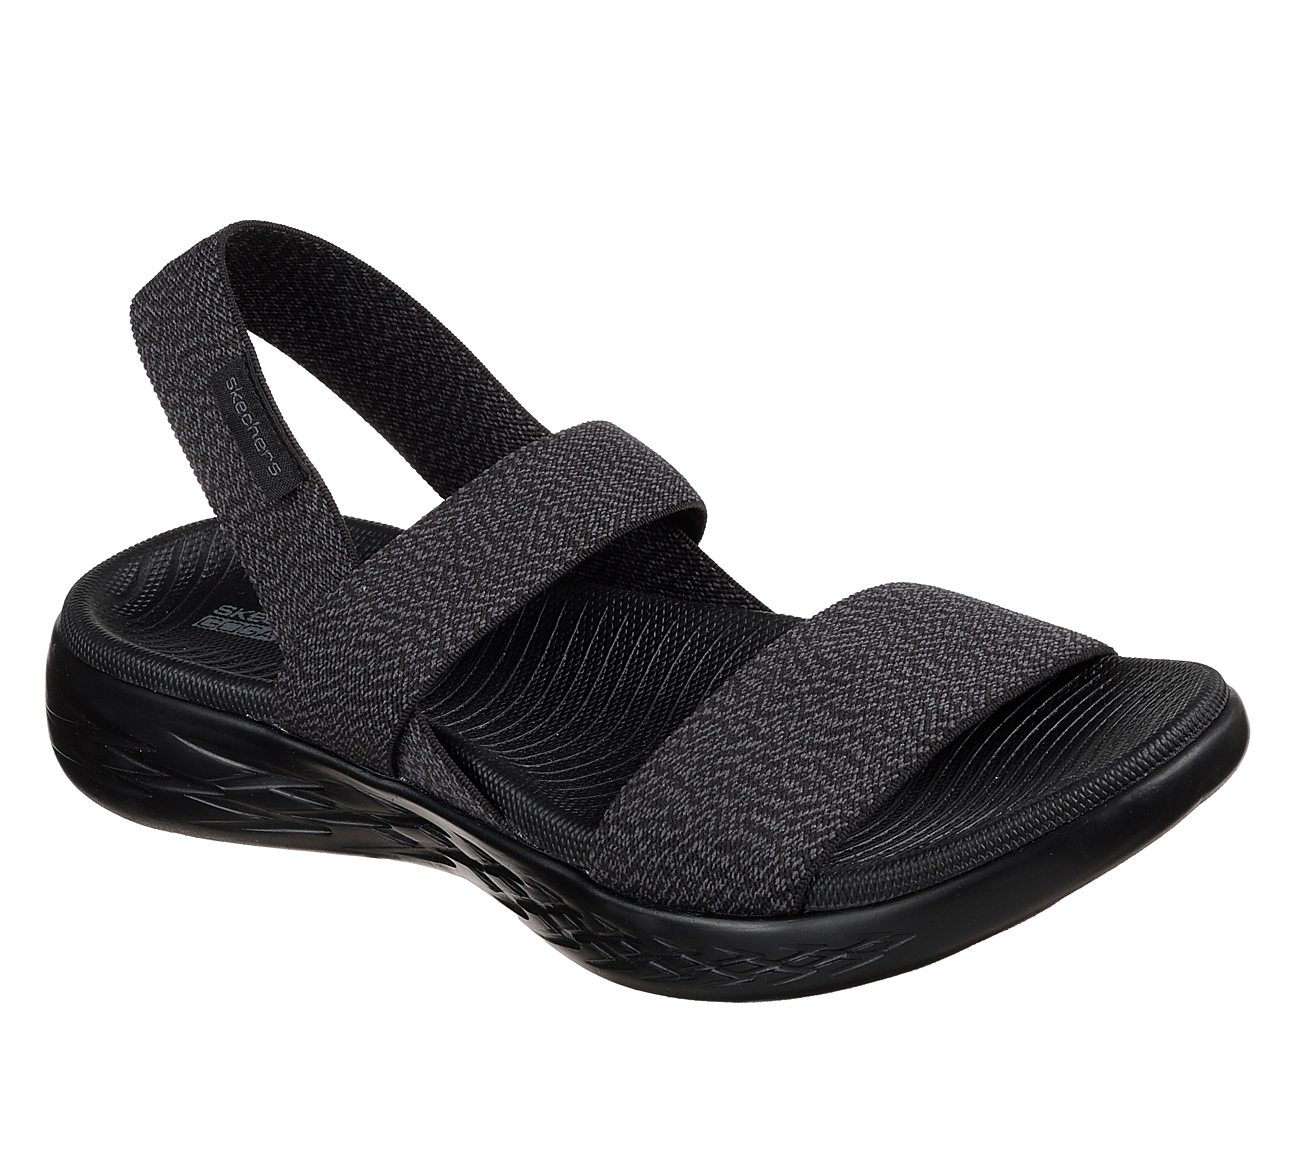 Shoes With Toes For Men